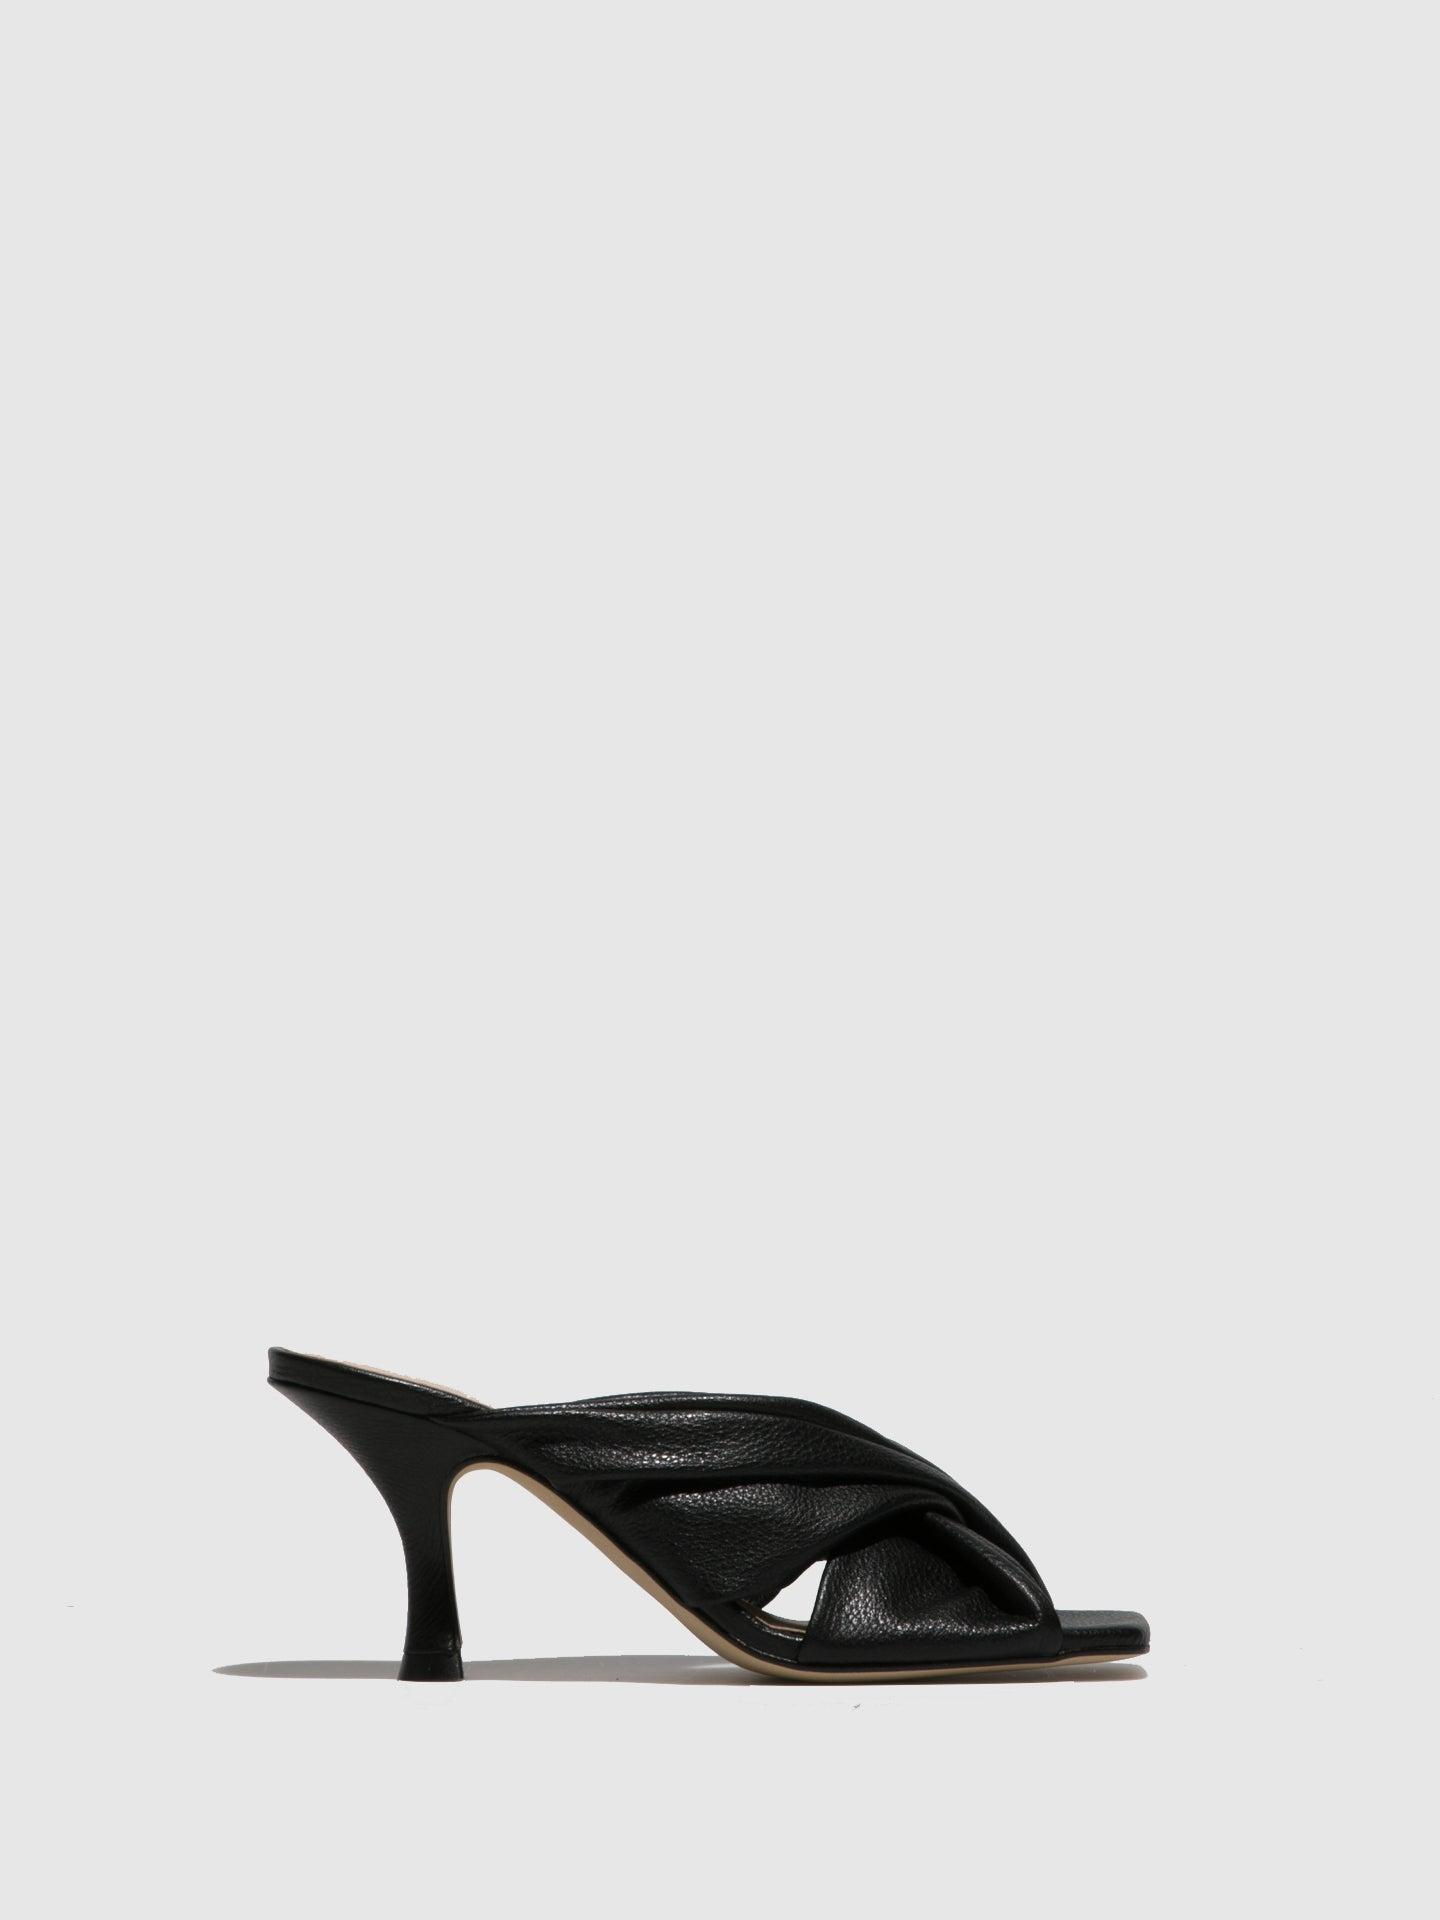 Sofia Costa Black Kitten Heel Mules